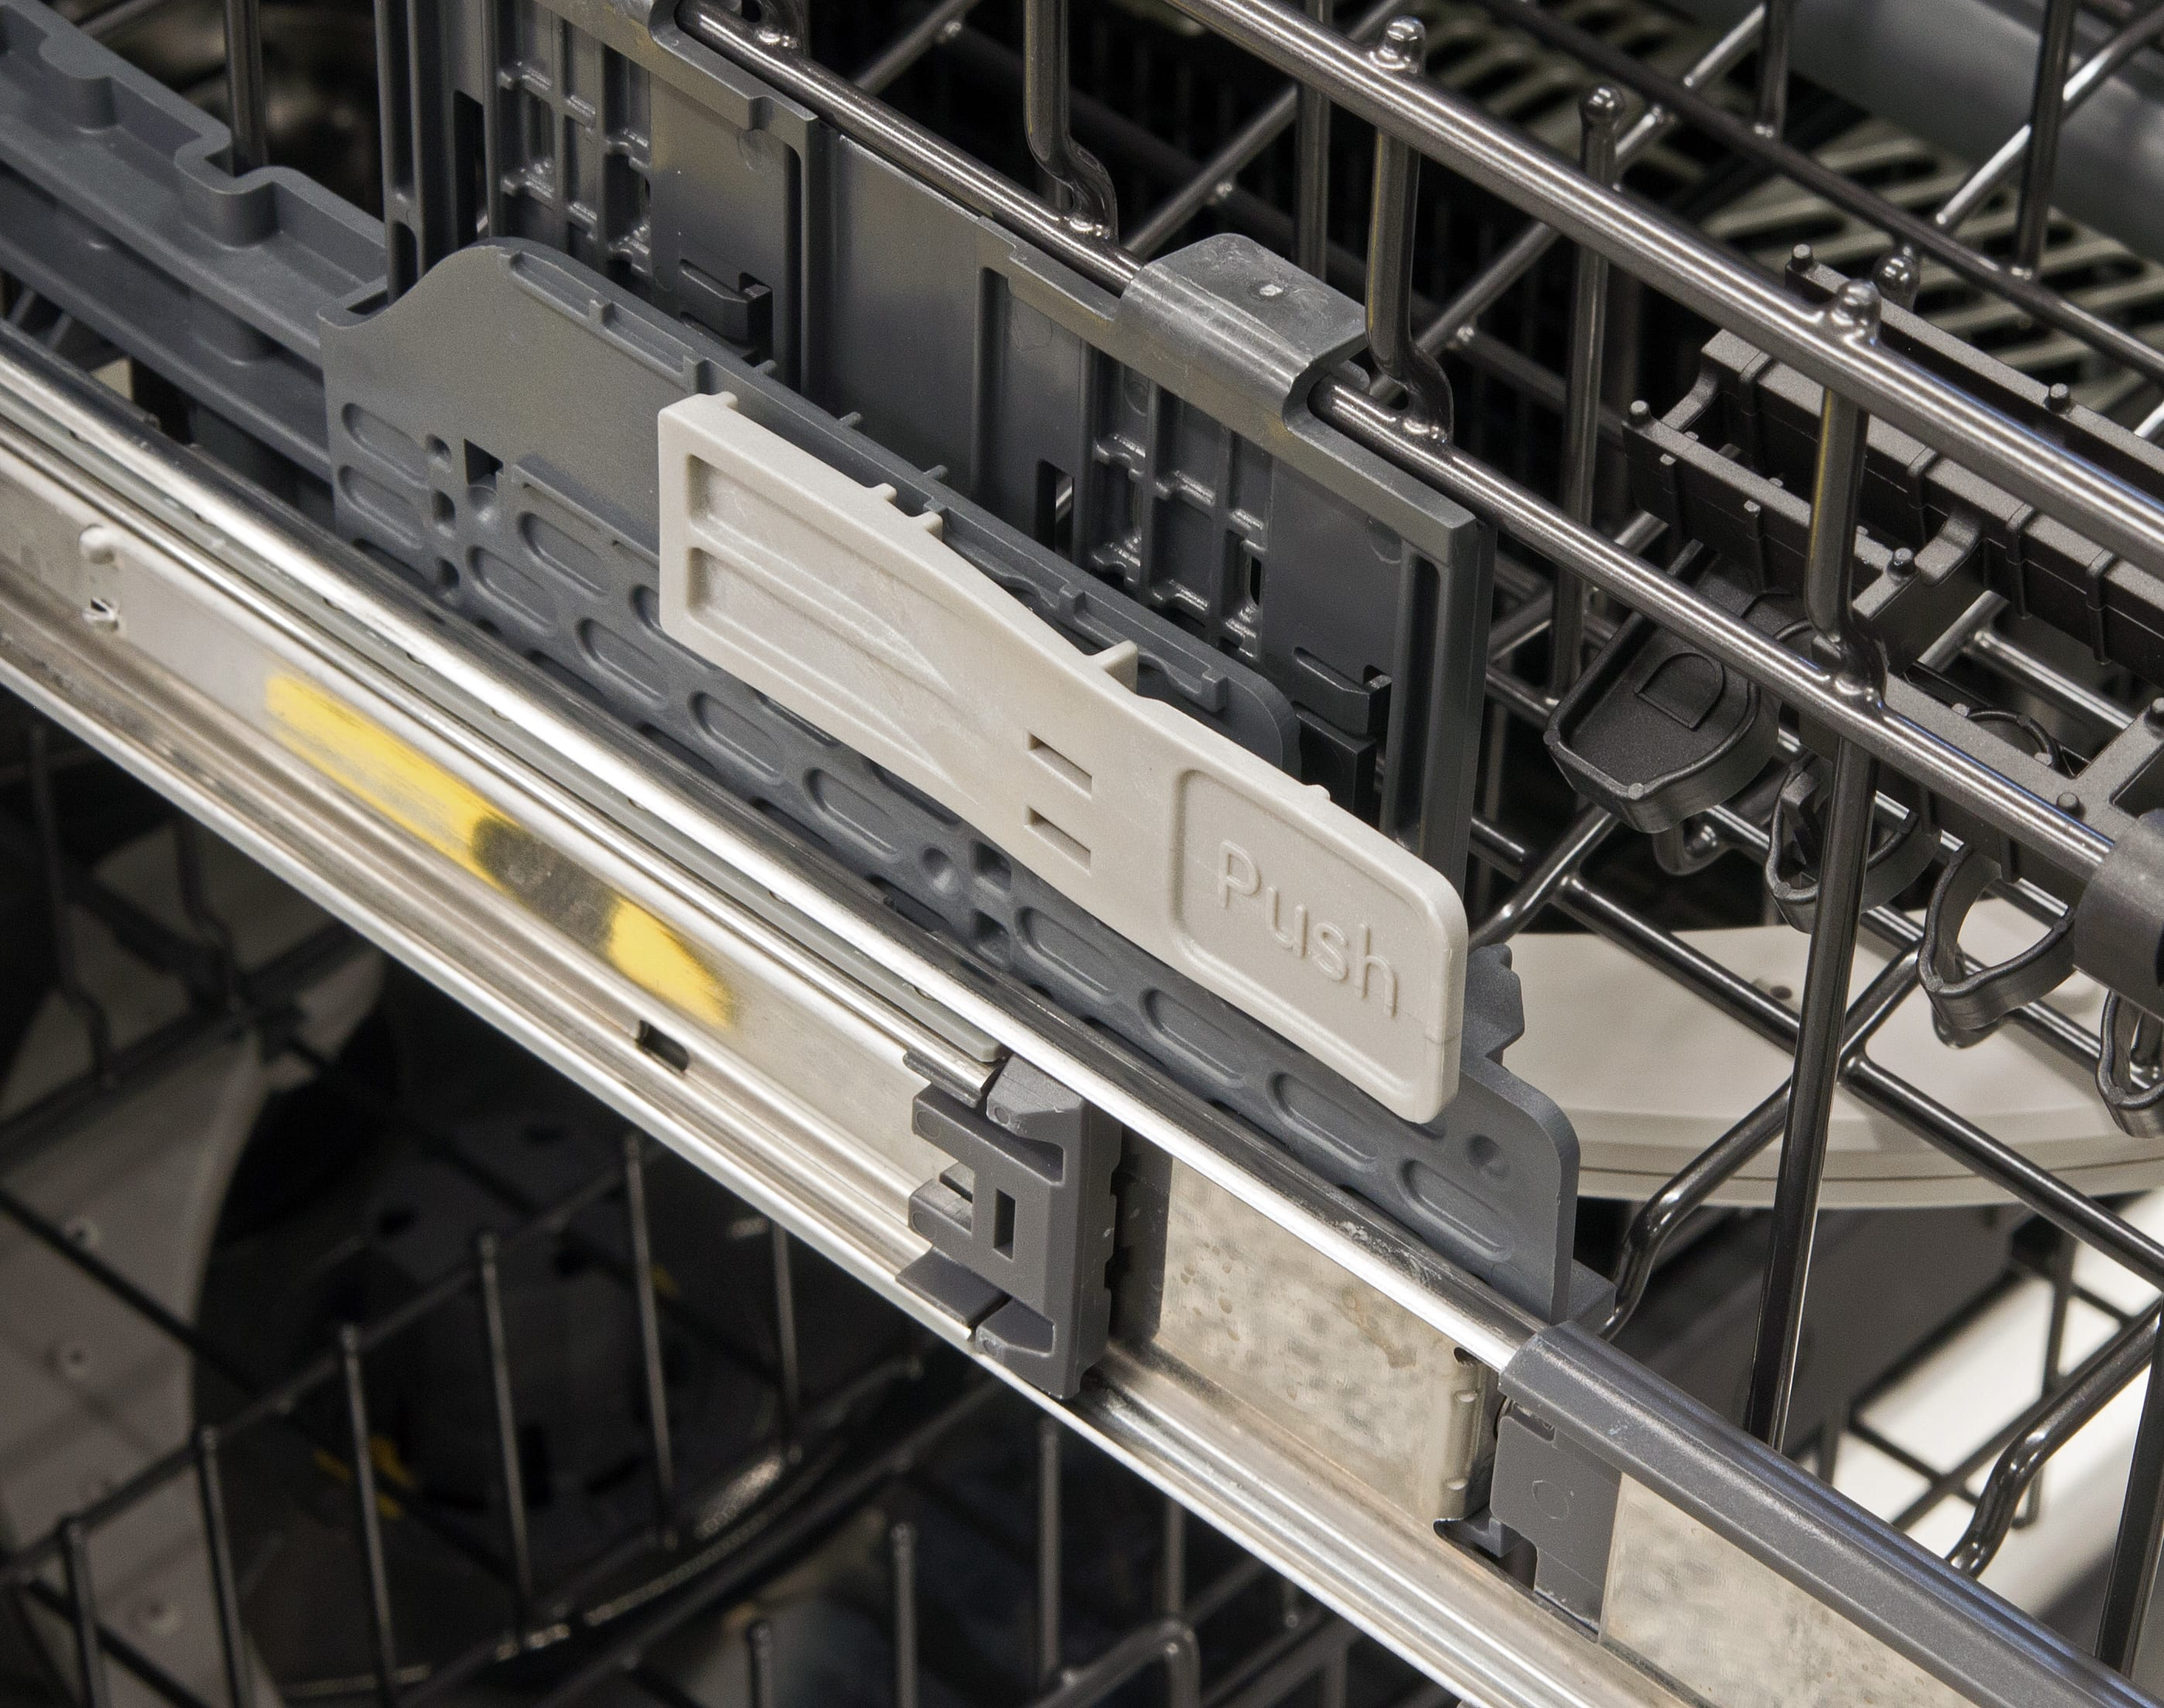 The height of the upper rack can be adjusted using the paddles on either side.